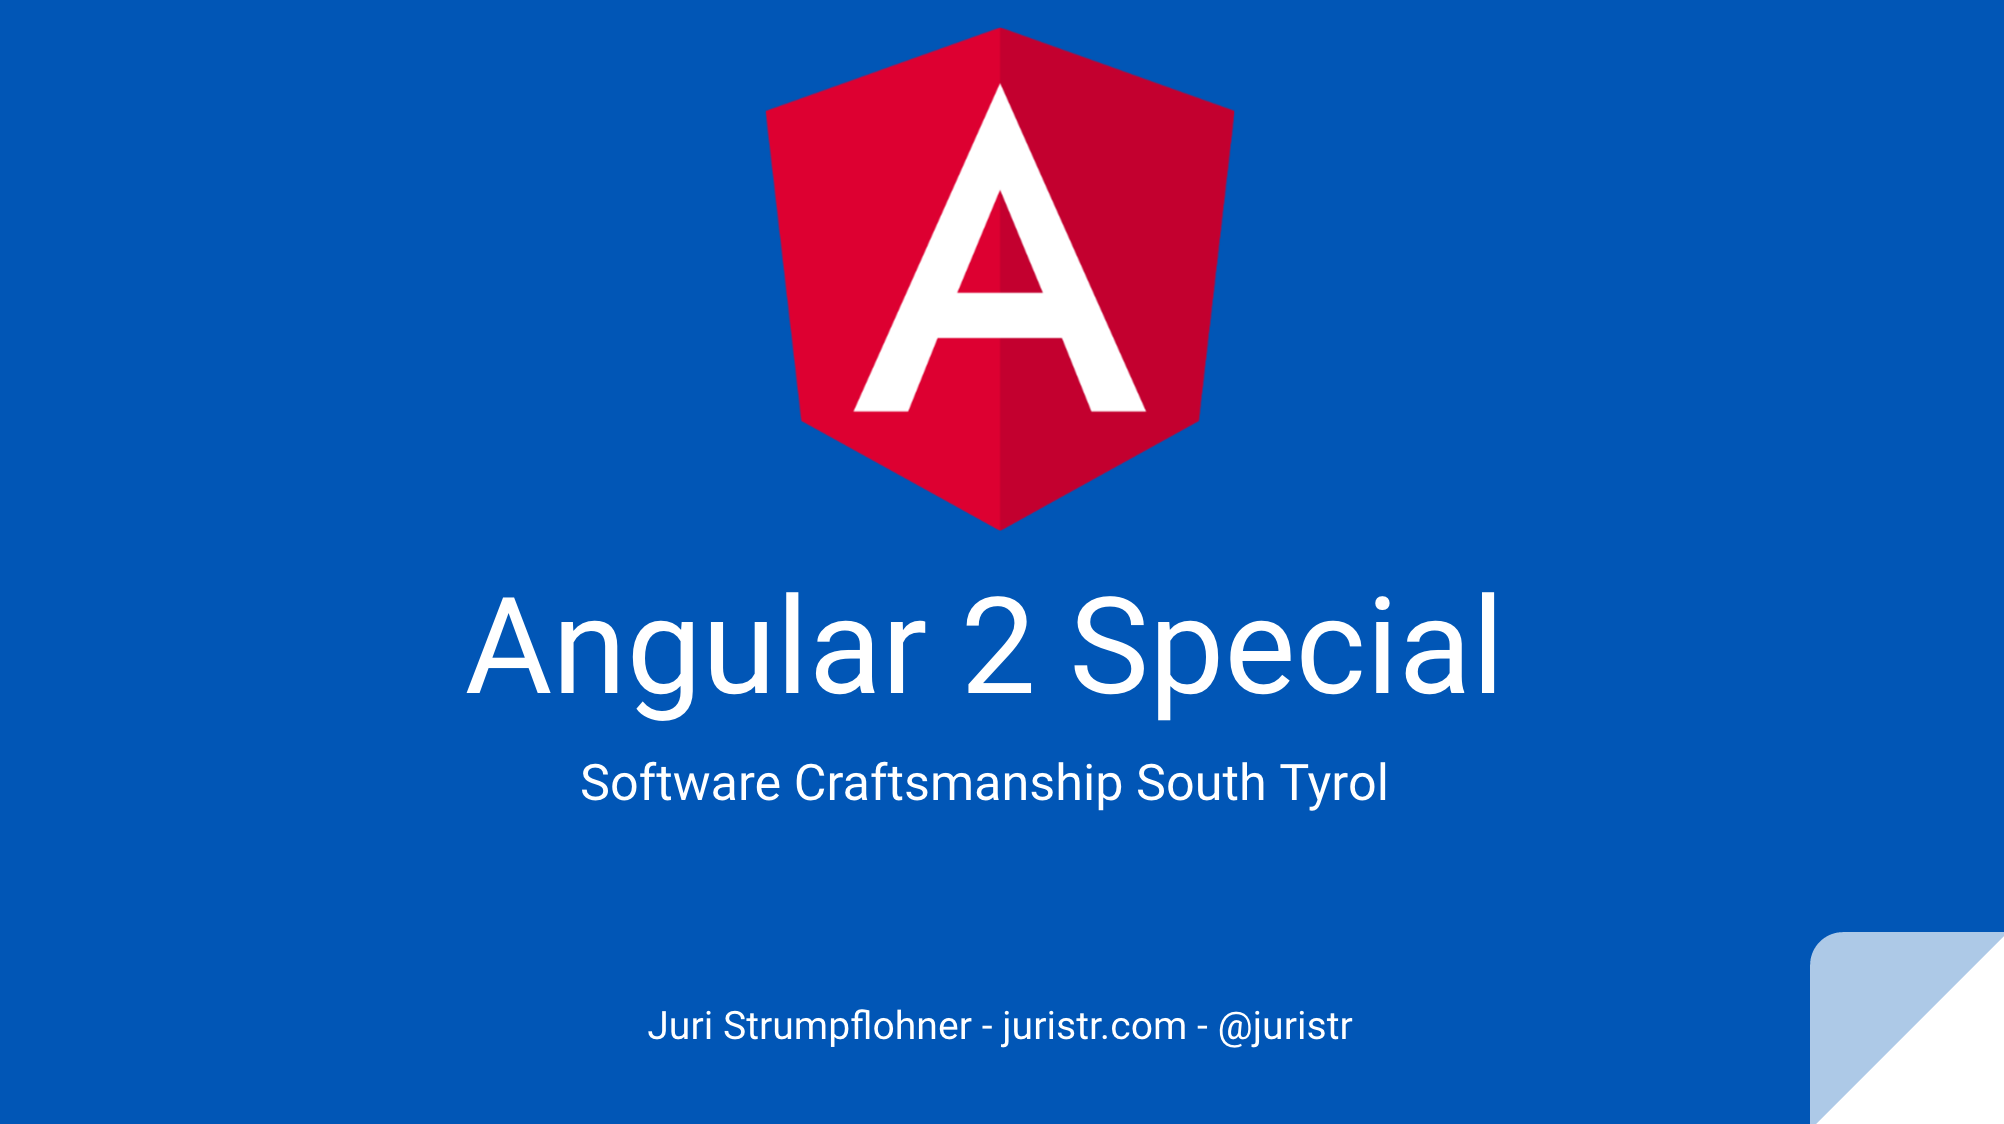 Angular Magazine cover image